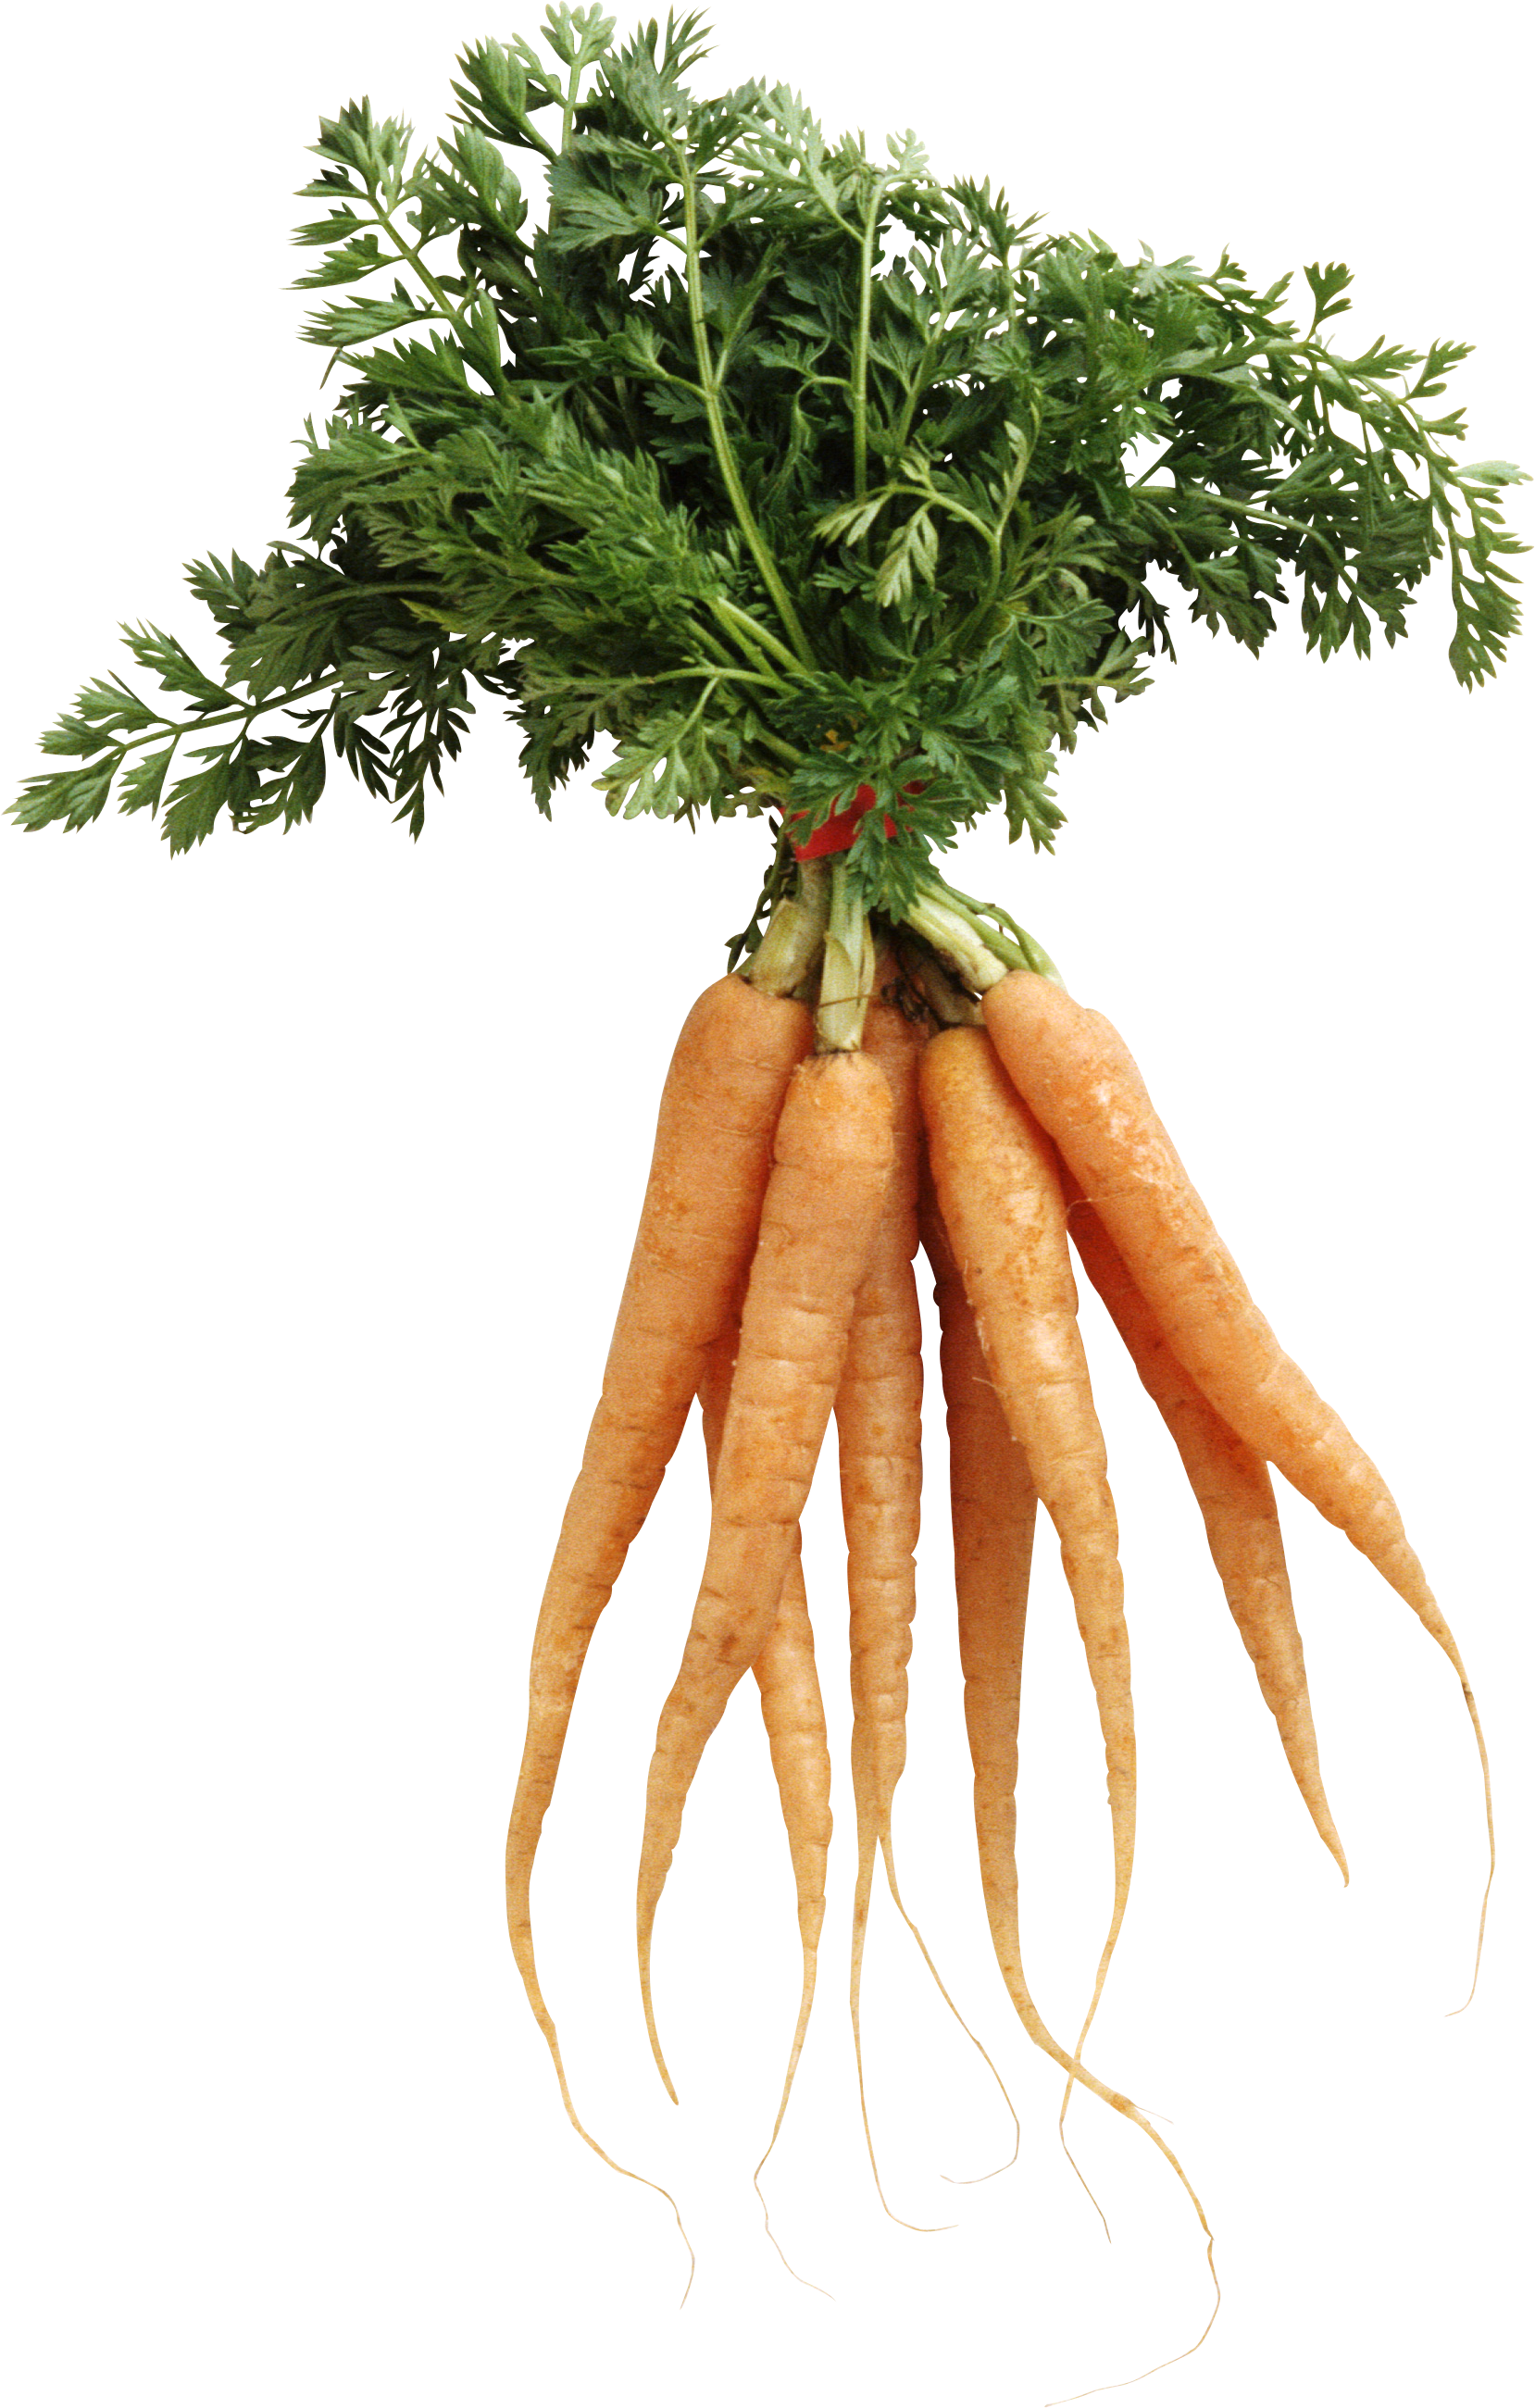 Carrot plant png. Image